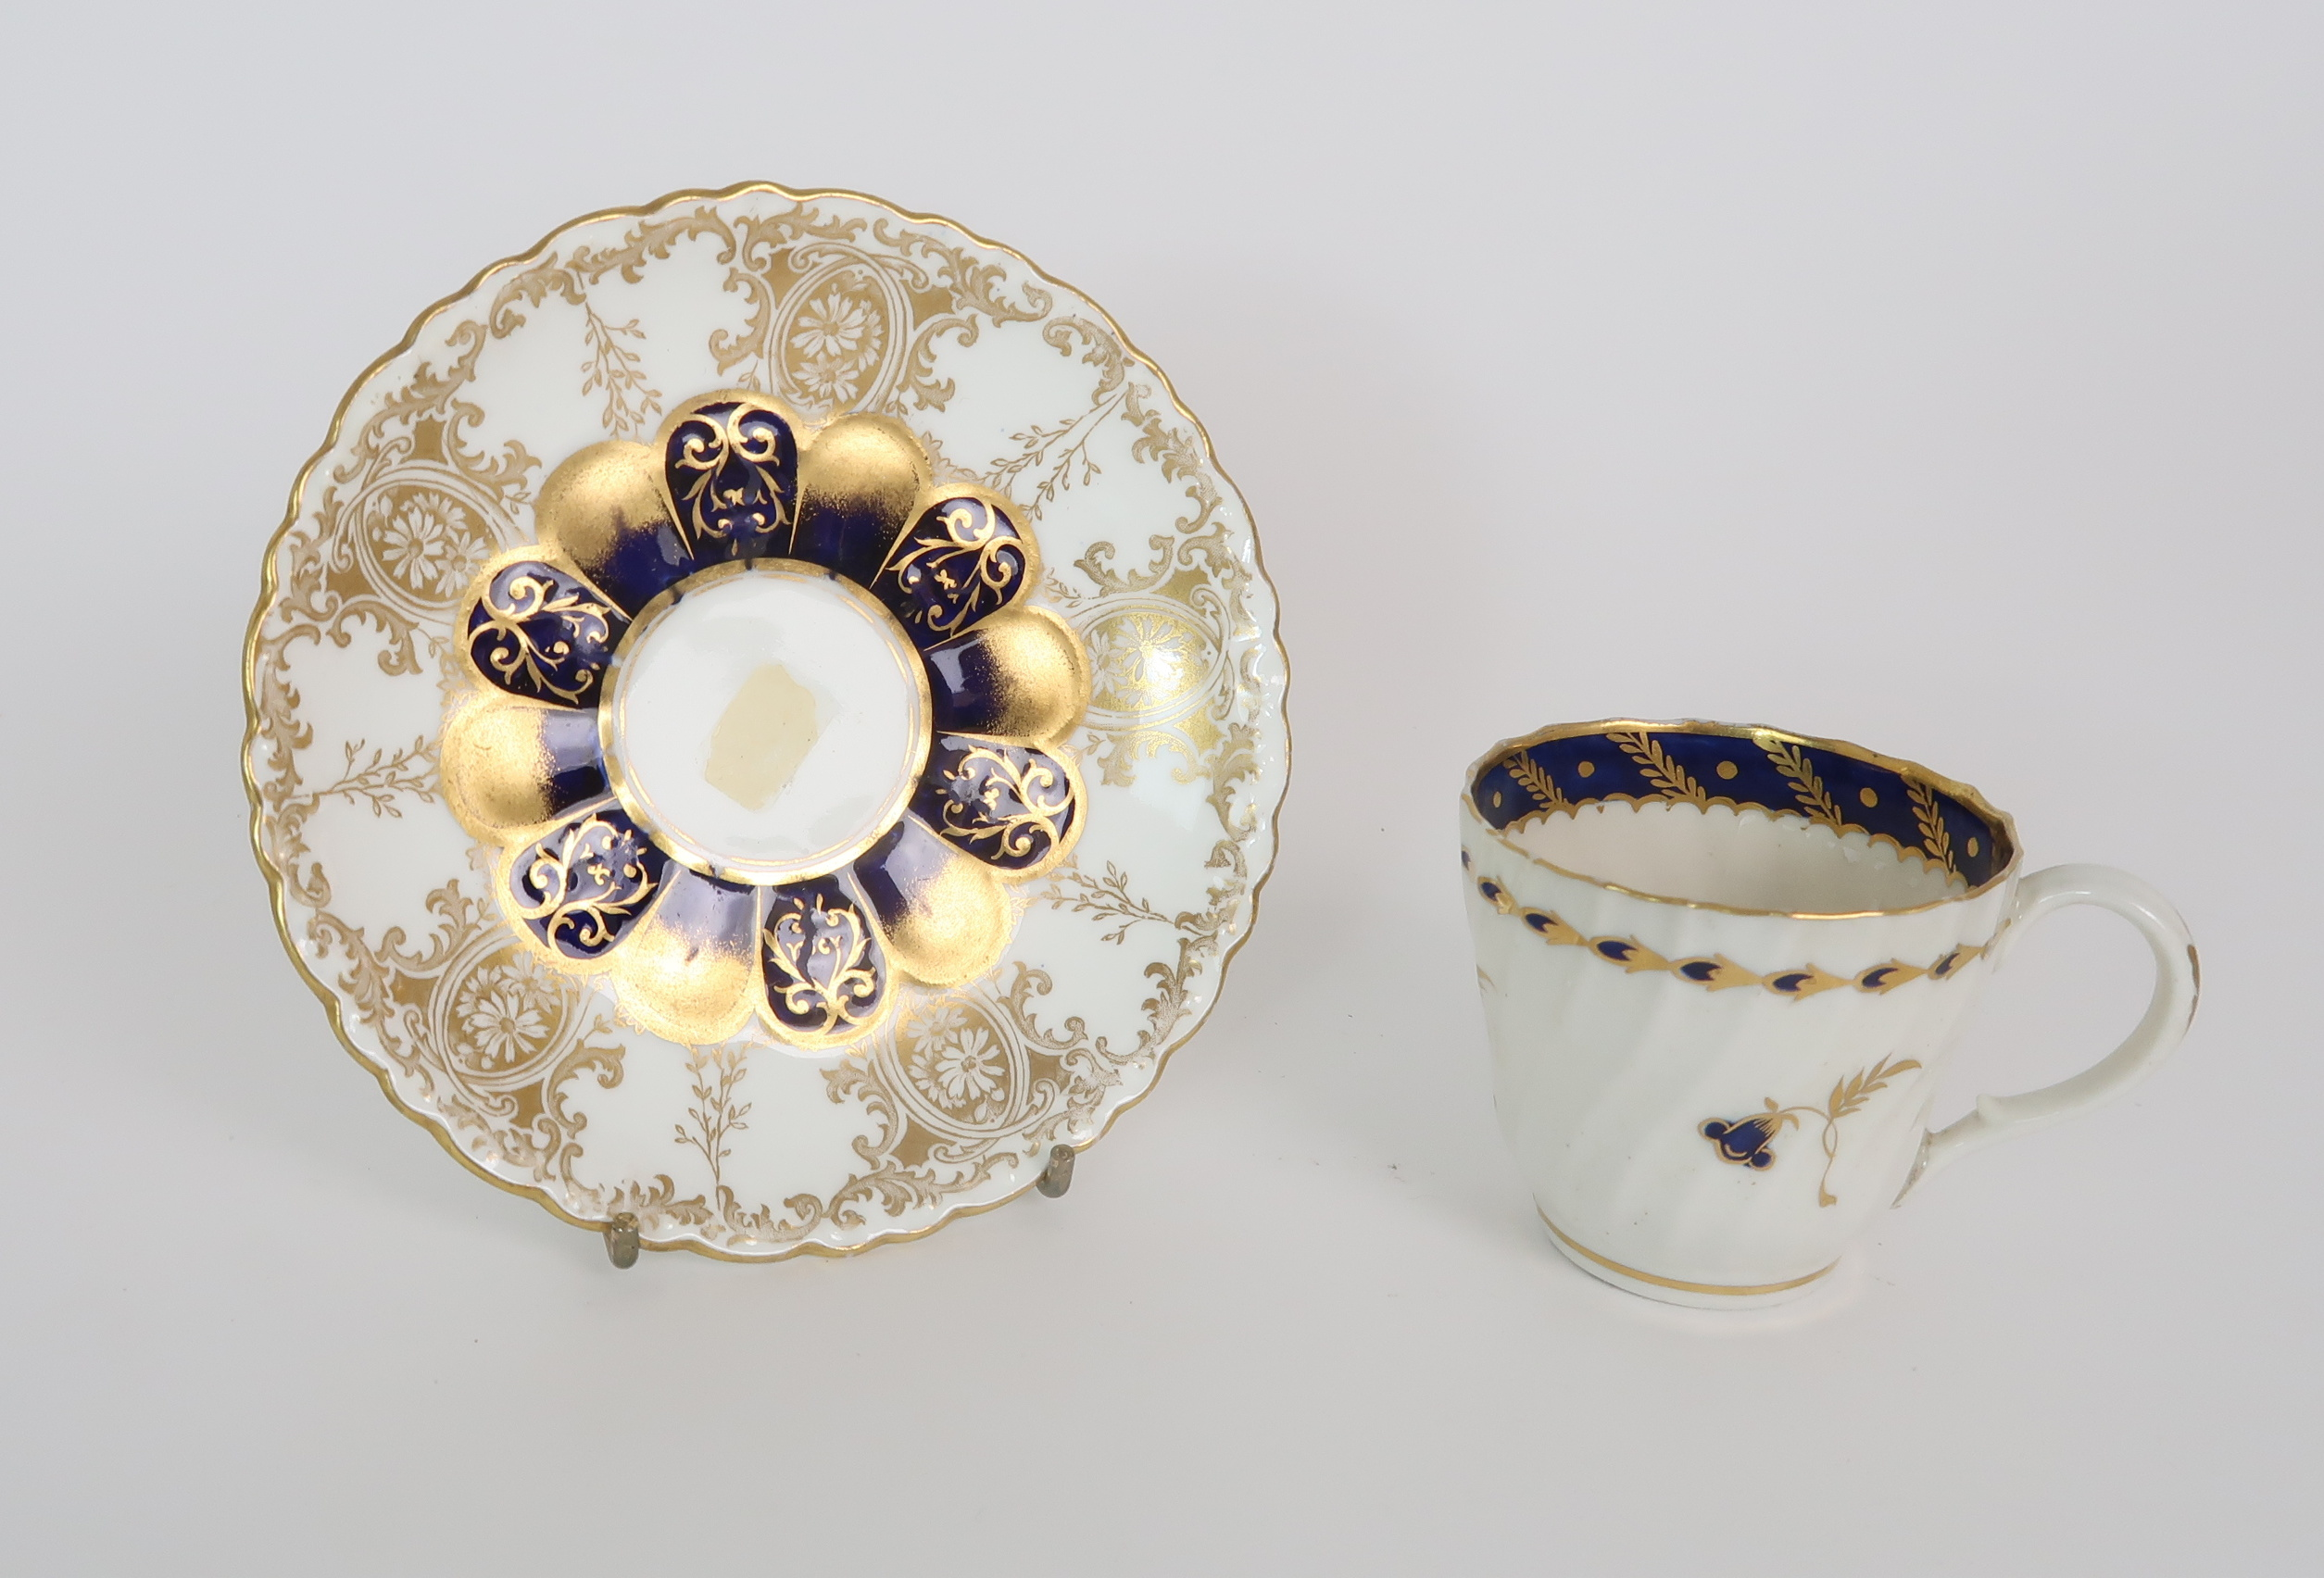 A COLLECTION OF 19TH CENTURY ENGLISH BLUE AND GILT DECORATED TEA AND COFFEE WARES including a - Image 10 of 23